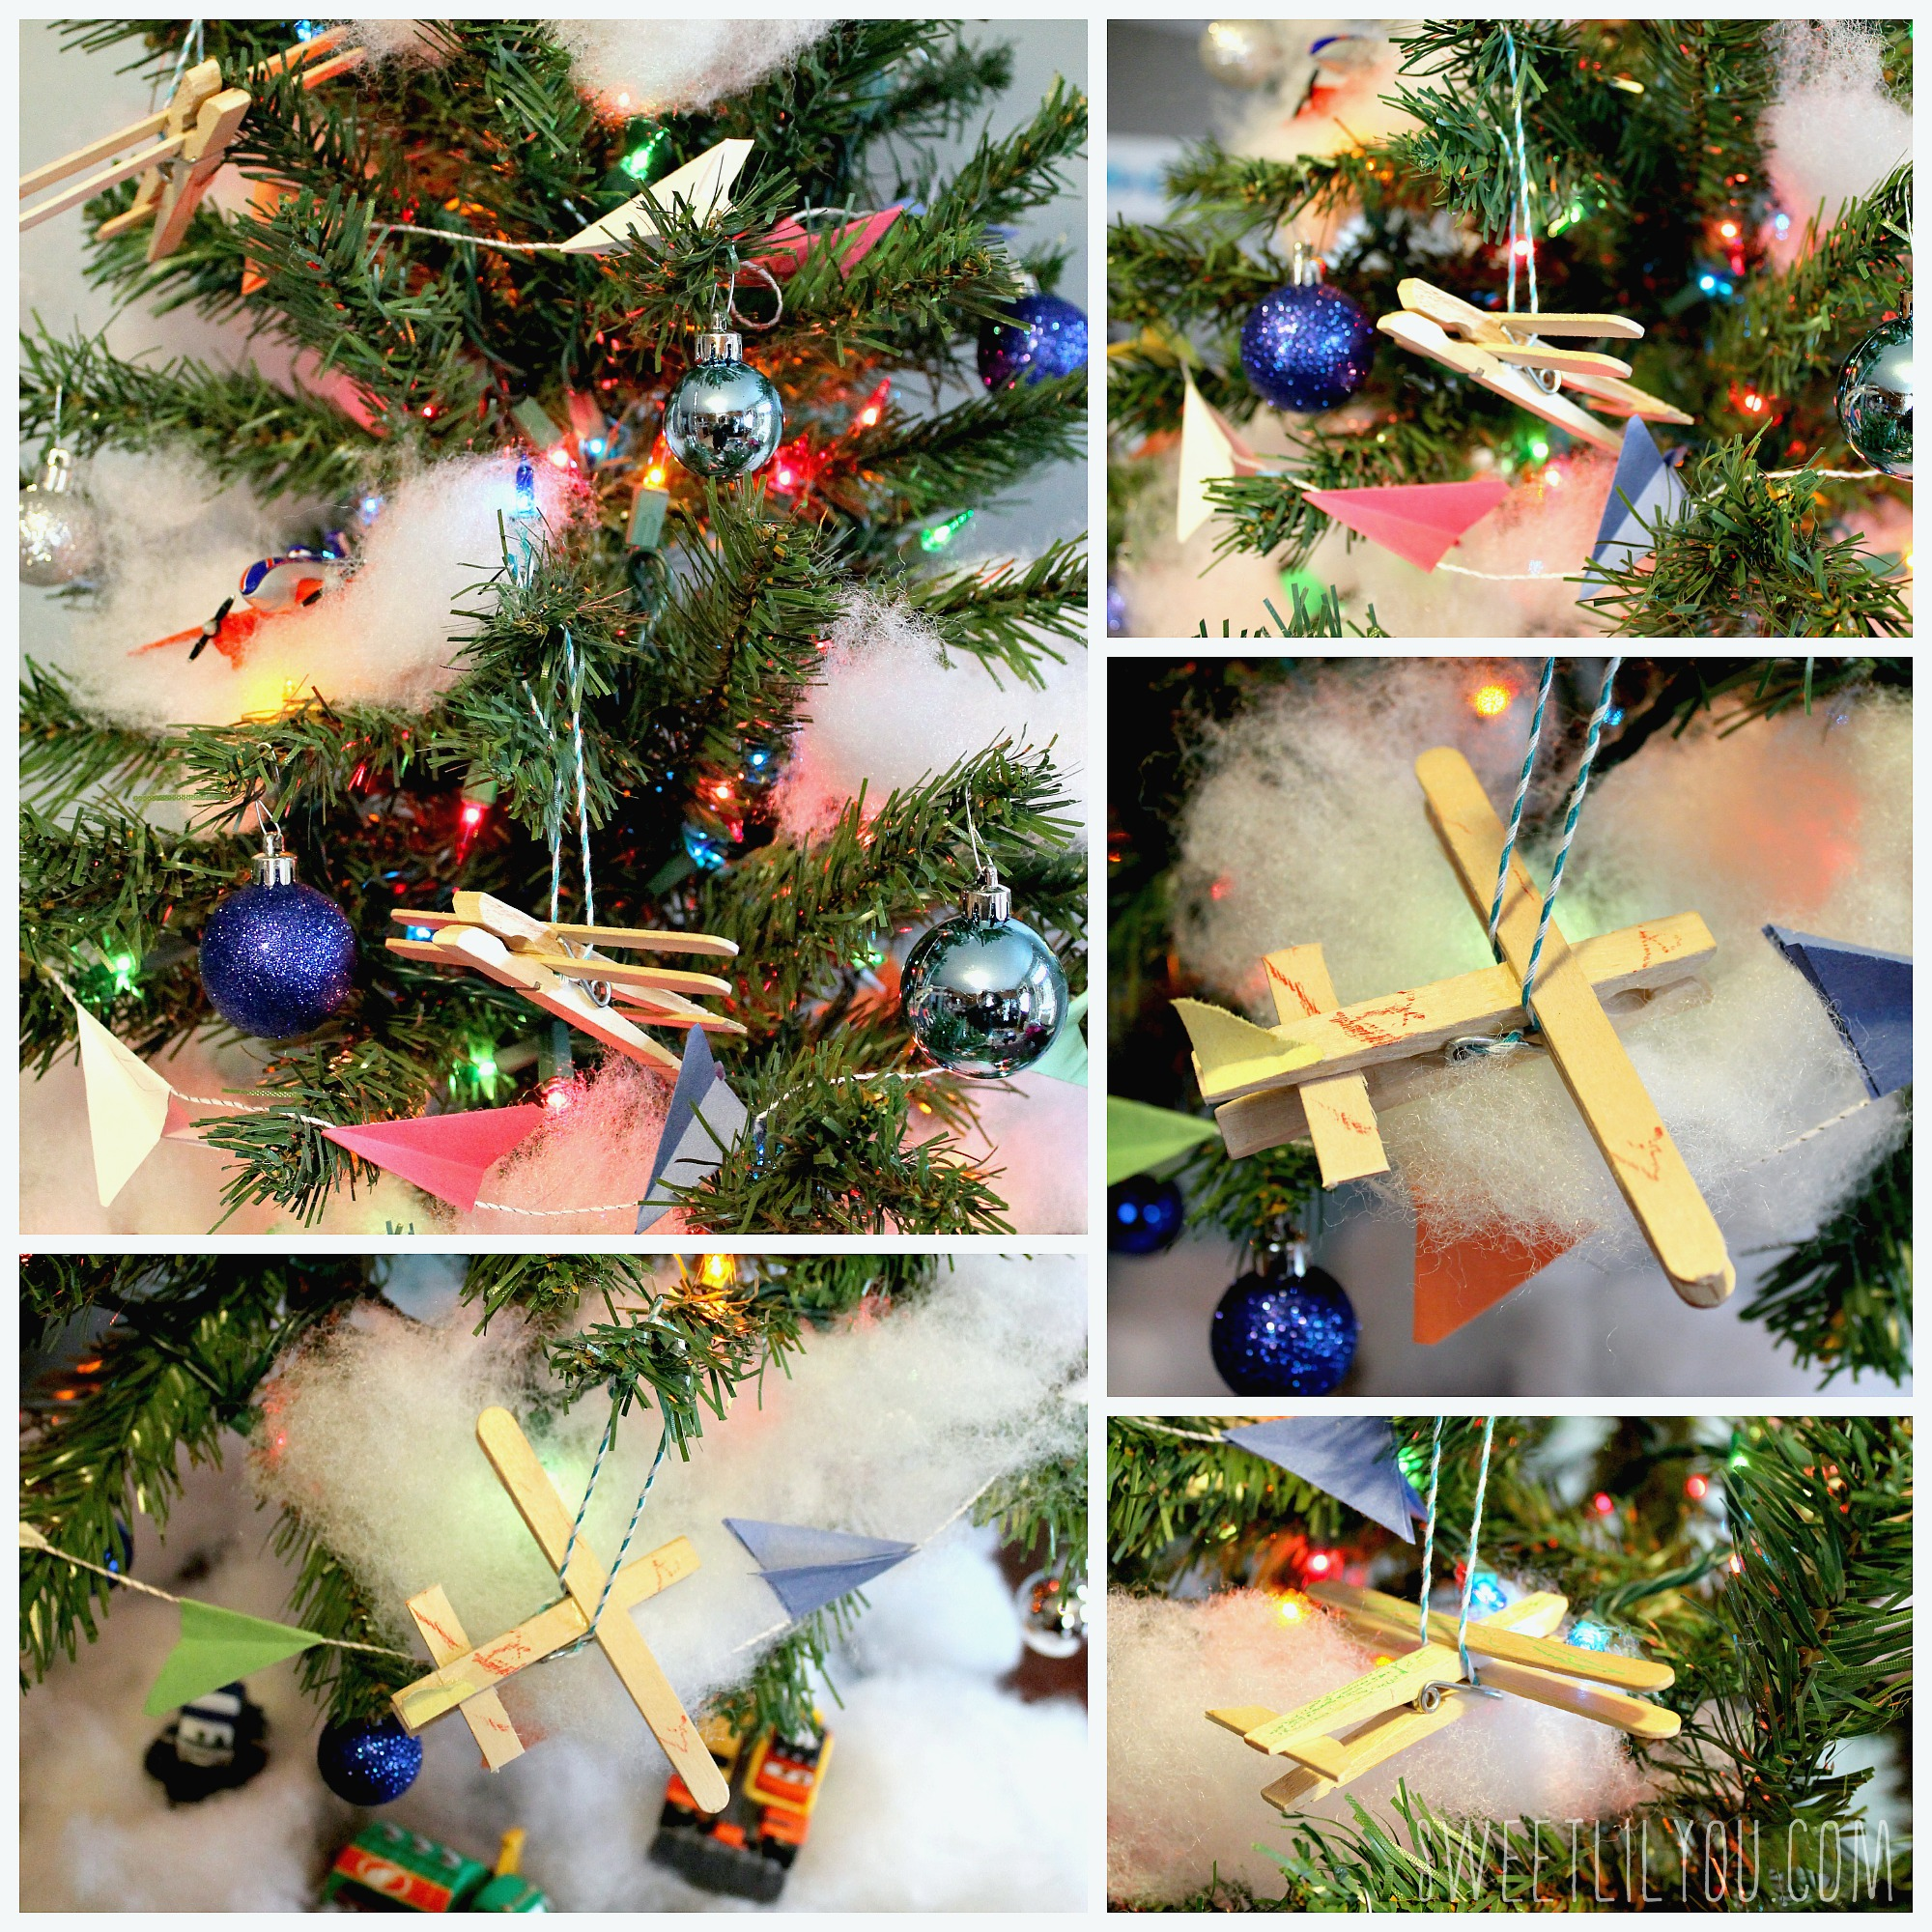 Wooden Plane Ornaments Clothespin PlanesToTheRescue